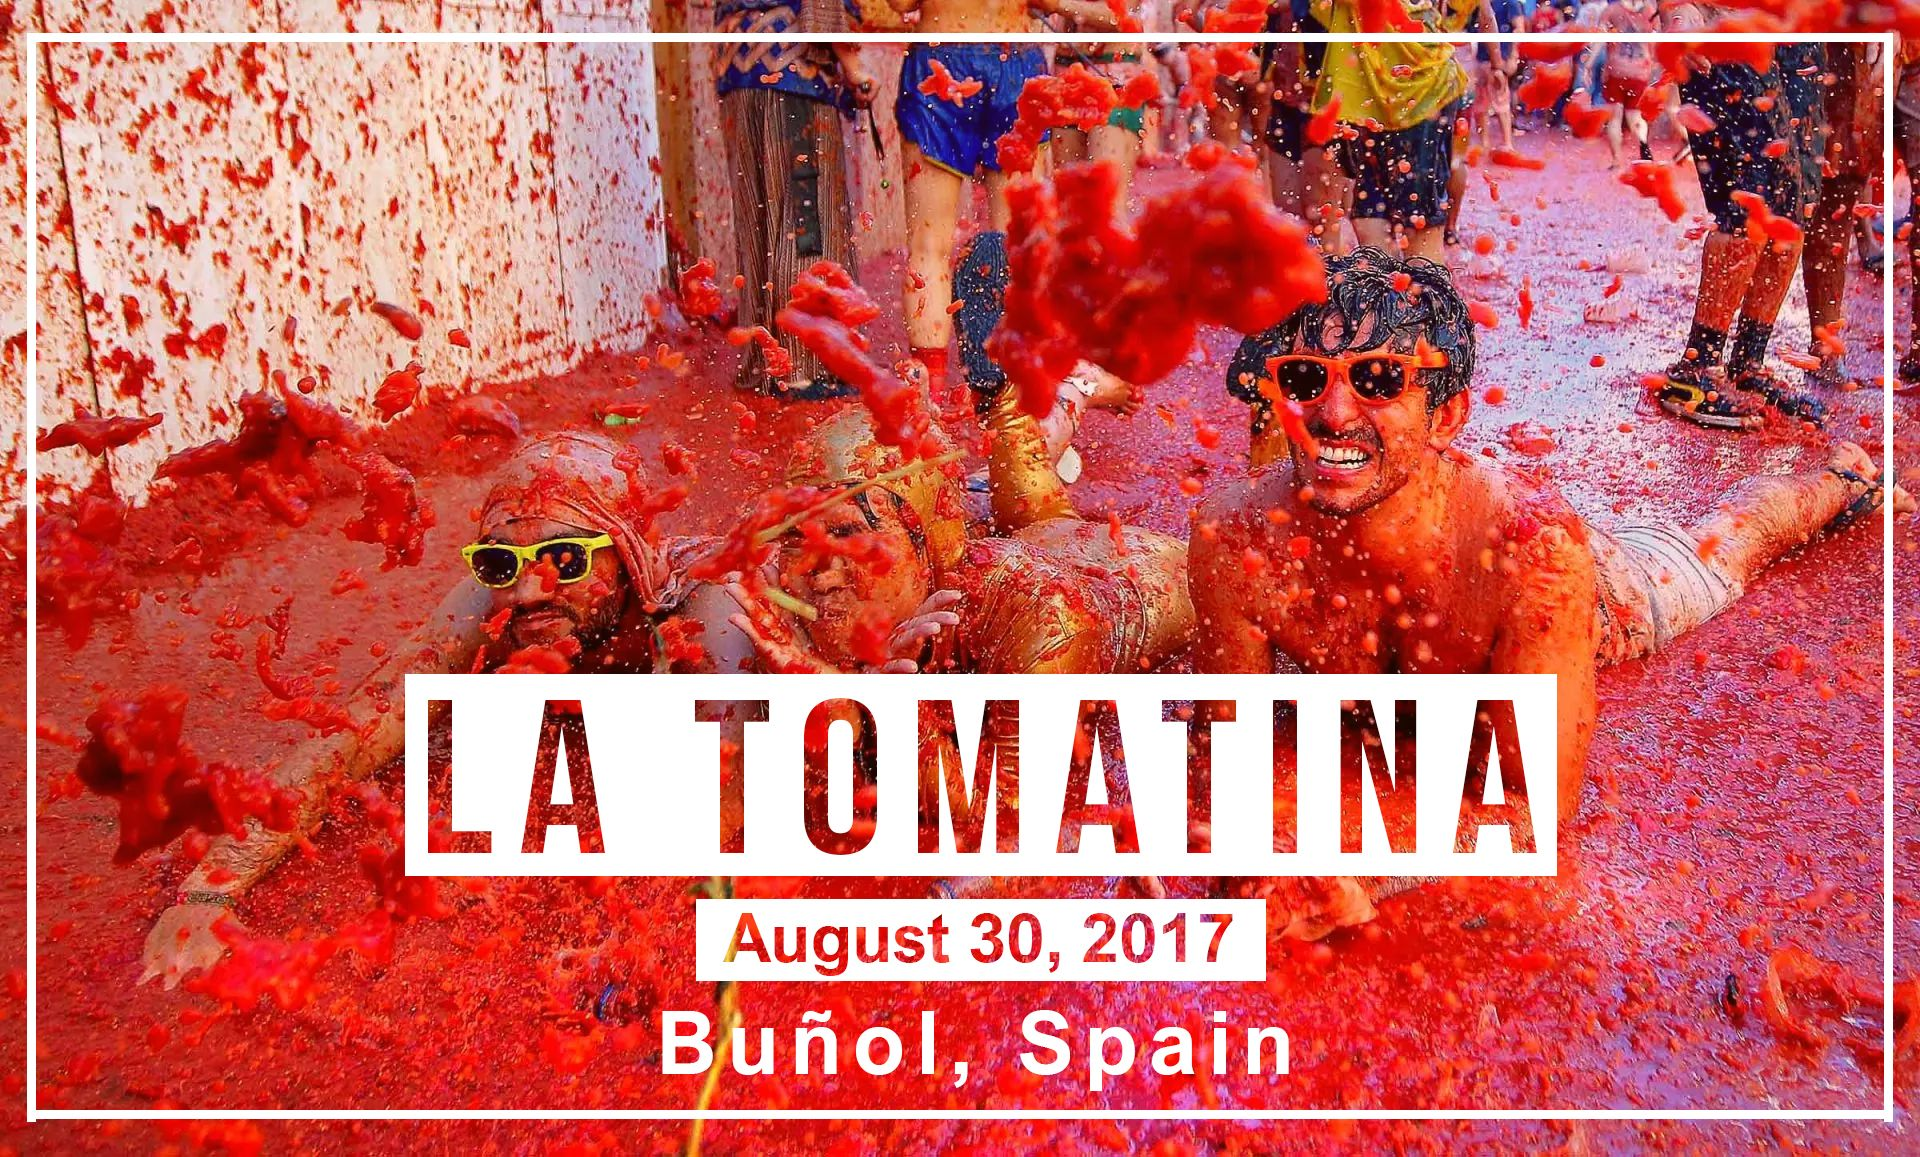 La Tomatina August 30th In Bunol Latomatina Bunol Spain Tomatofestival Globelink Travel